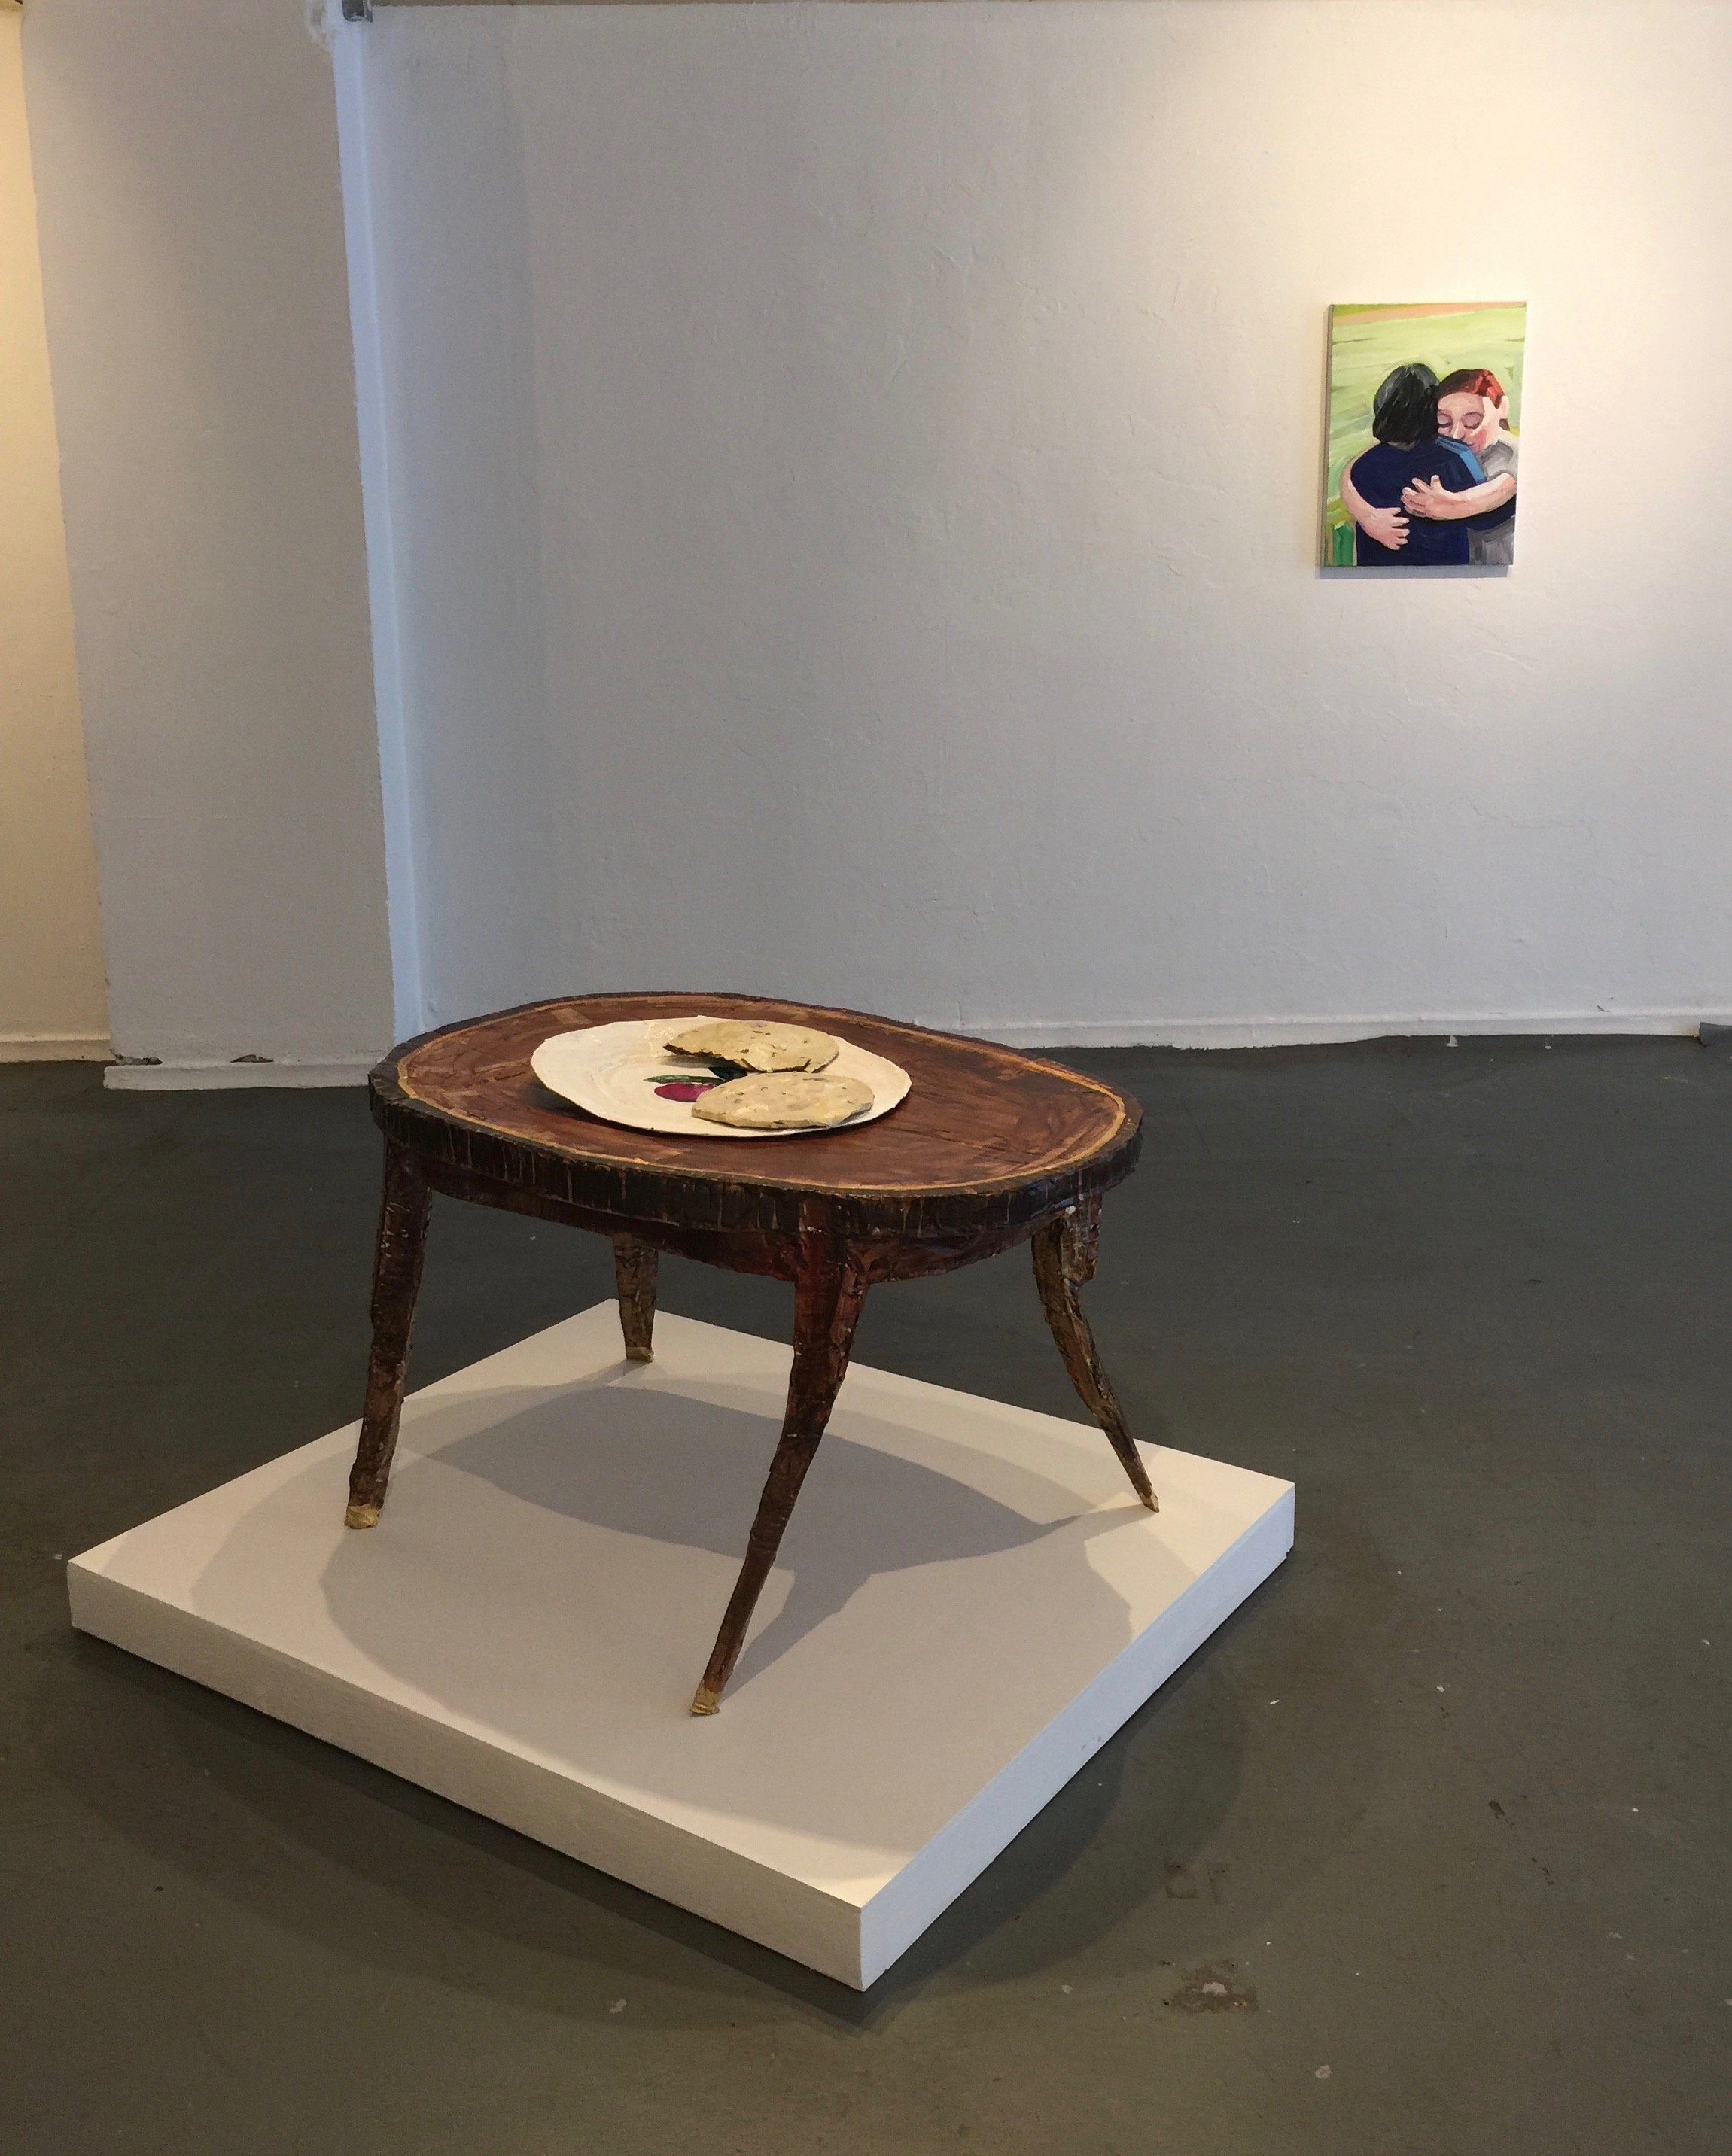 Installation image with  Coffee Table with Cookies  (2017), Acrylic on cardboard and masking tape on wood pedestal